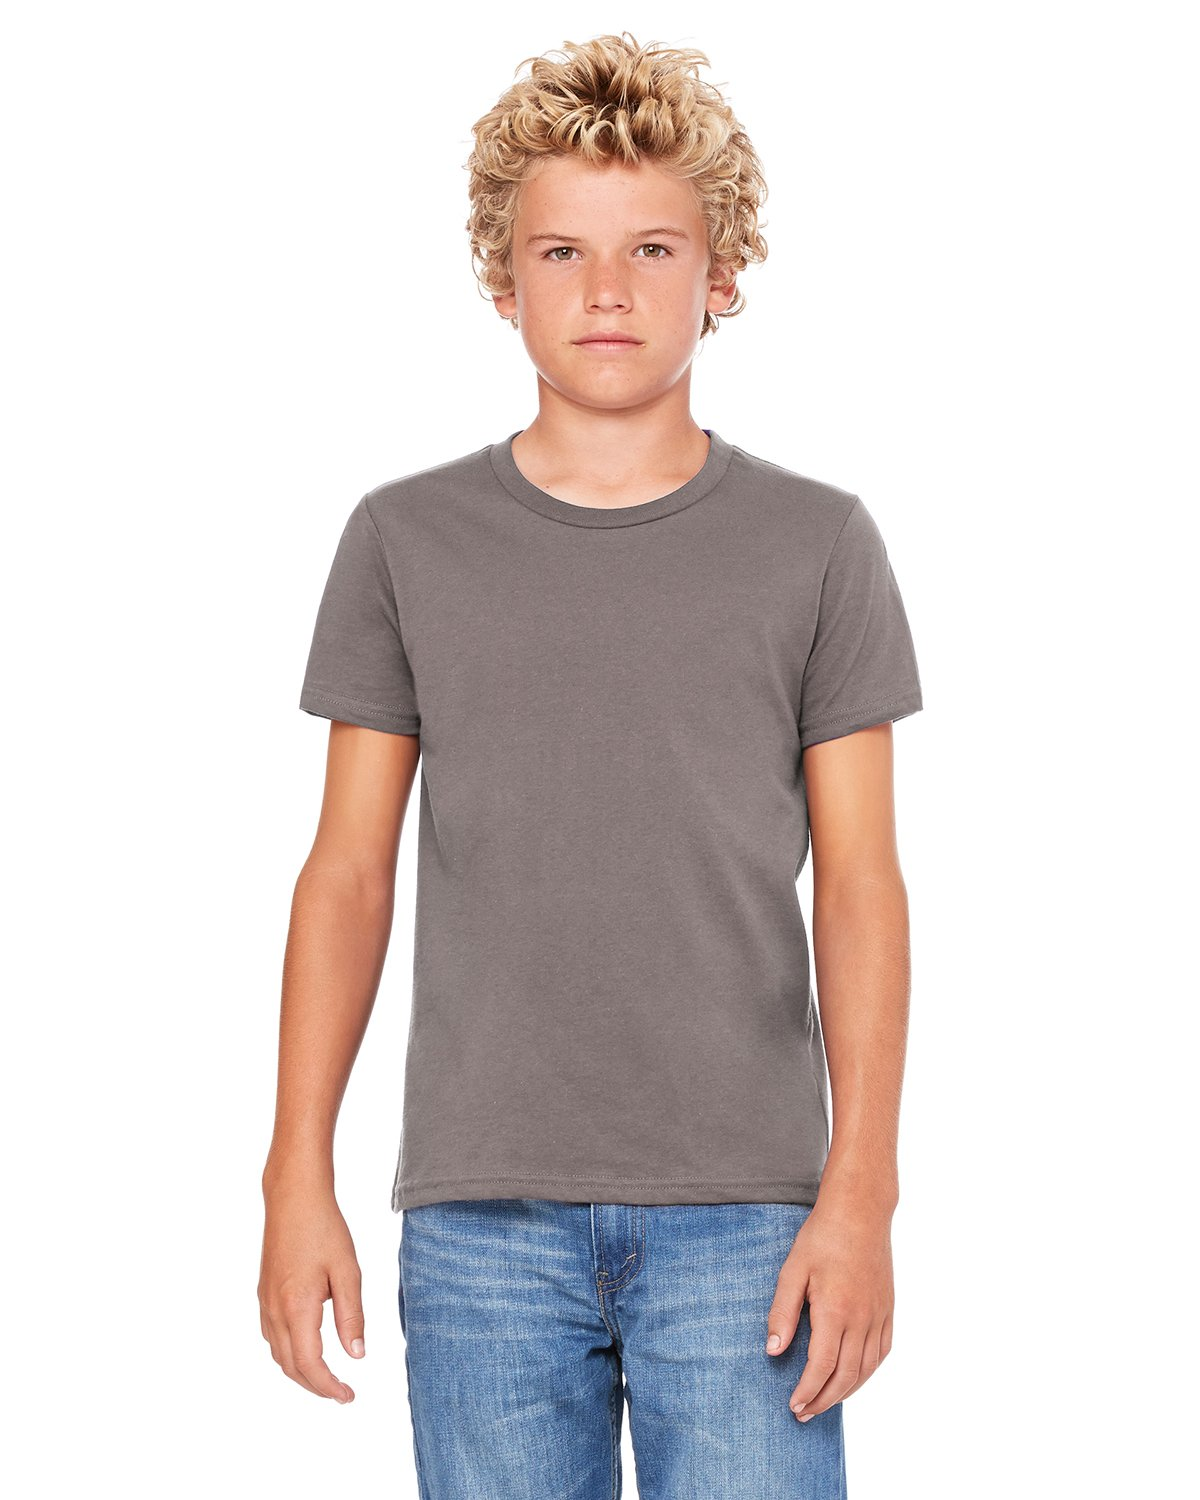 Bella + Canvas - 3001Y - Youth Jersey Short-Sleeve T-Shirt